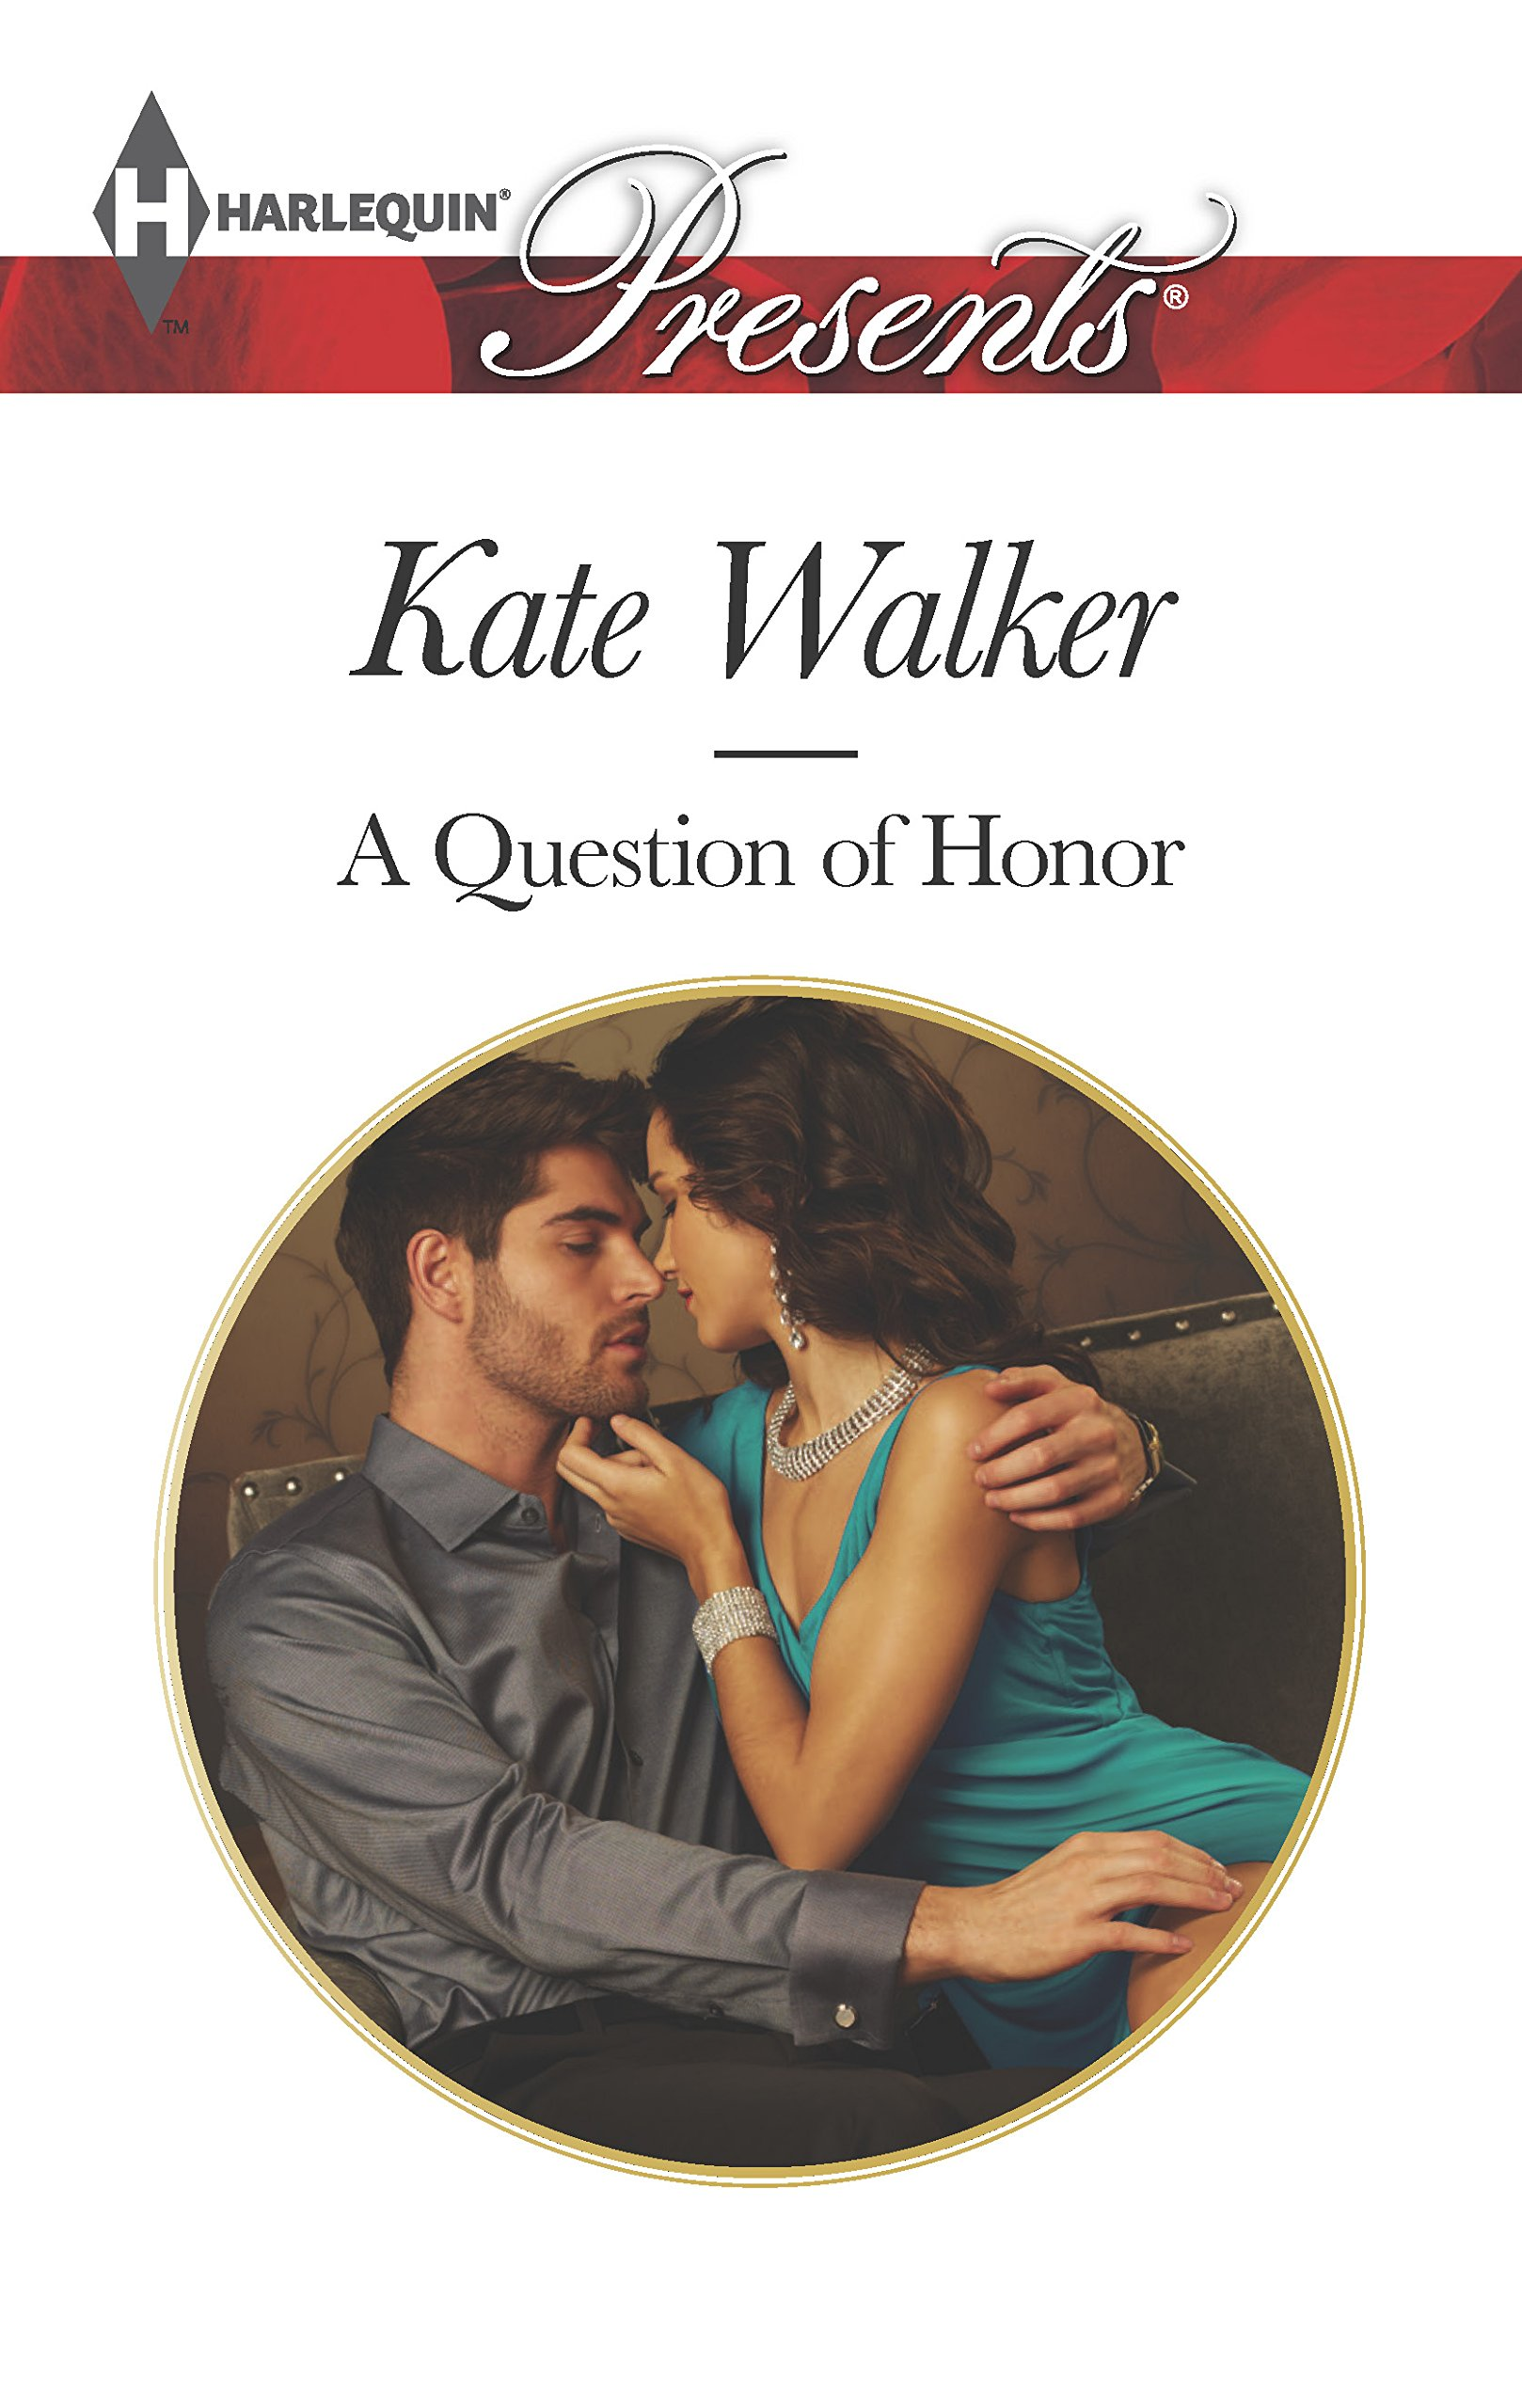 A Question of Honor (Harlequin Presents): Kate Walker: 9780373132539